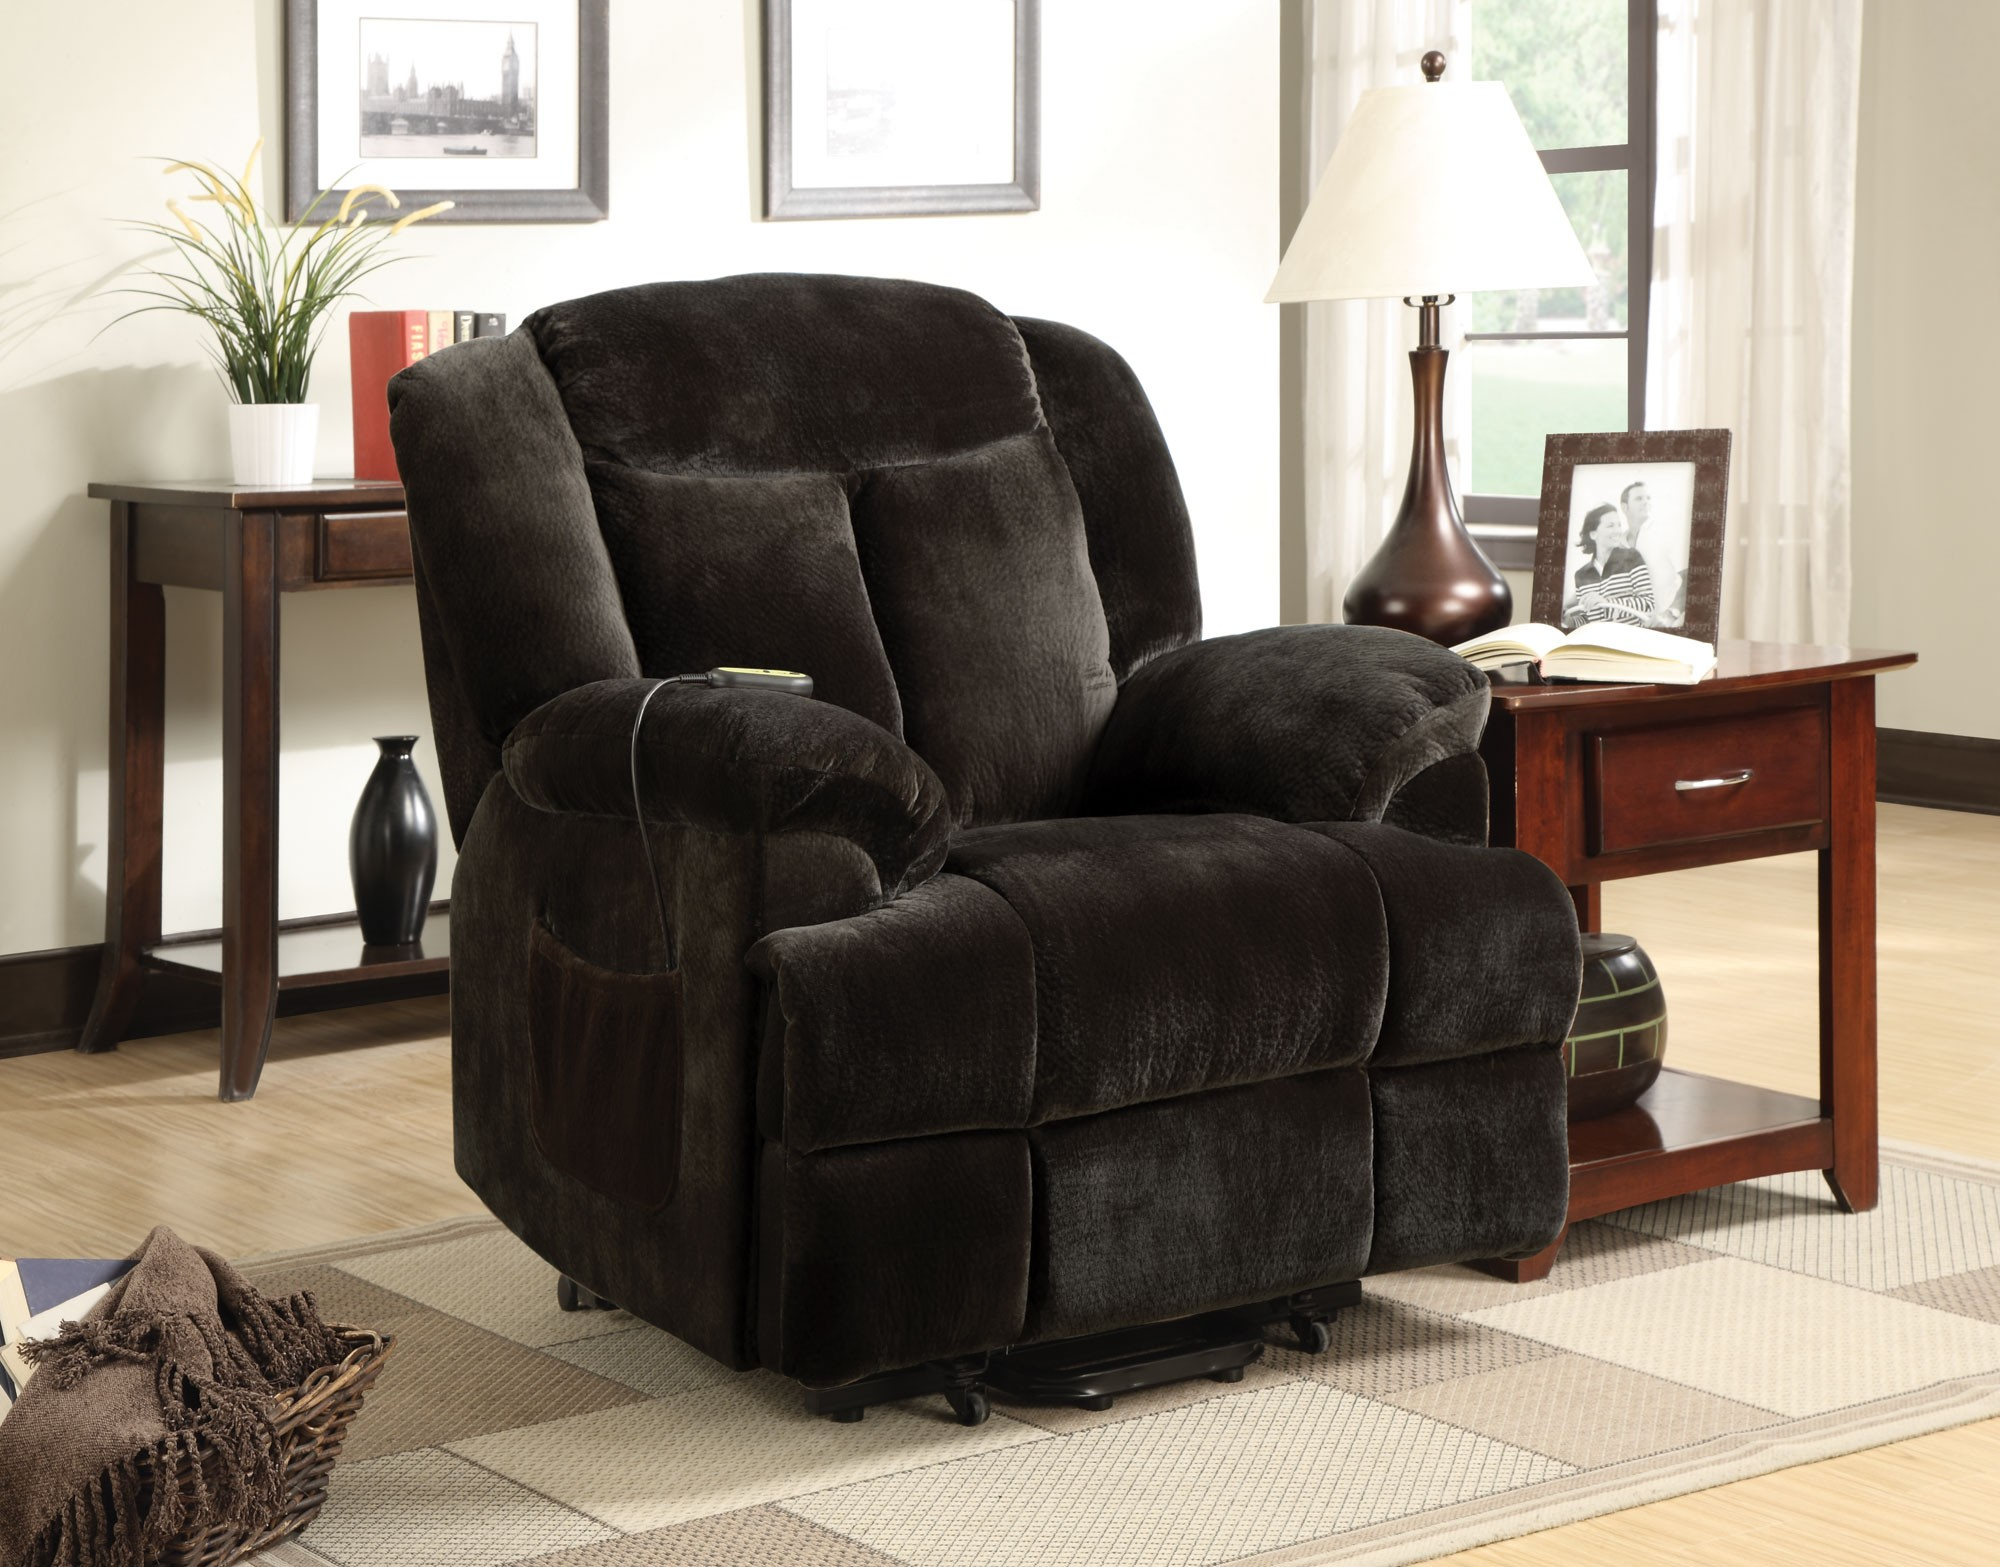 Outstanding Chocolate Power Lift Recliner Chair Onthecornerstone Fun Painted Chair Ideas Images Onthecornerstoneorg